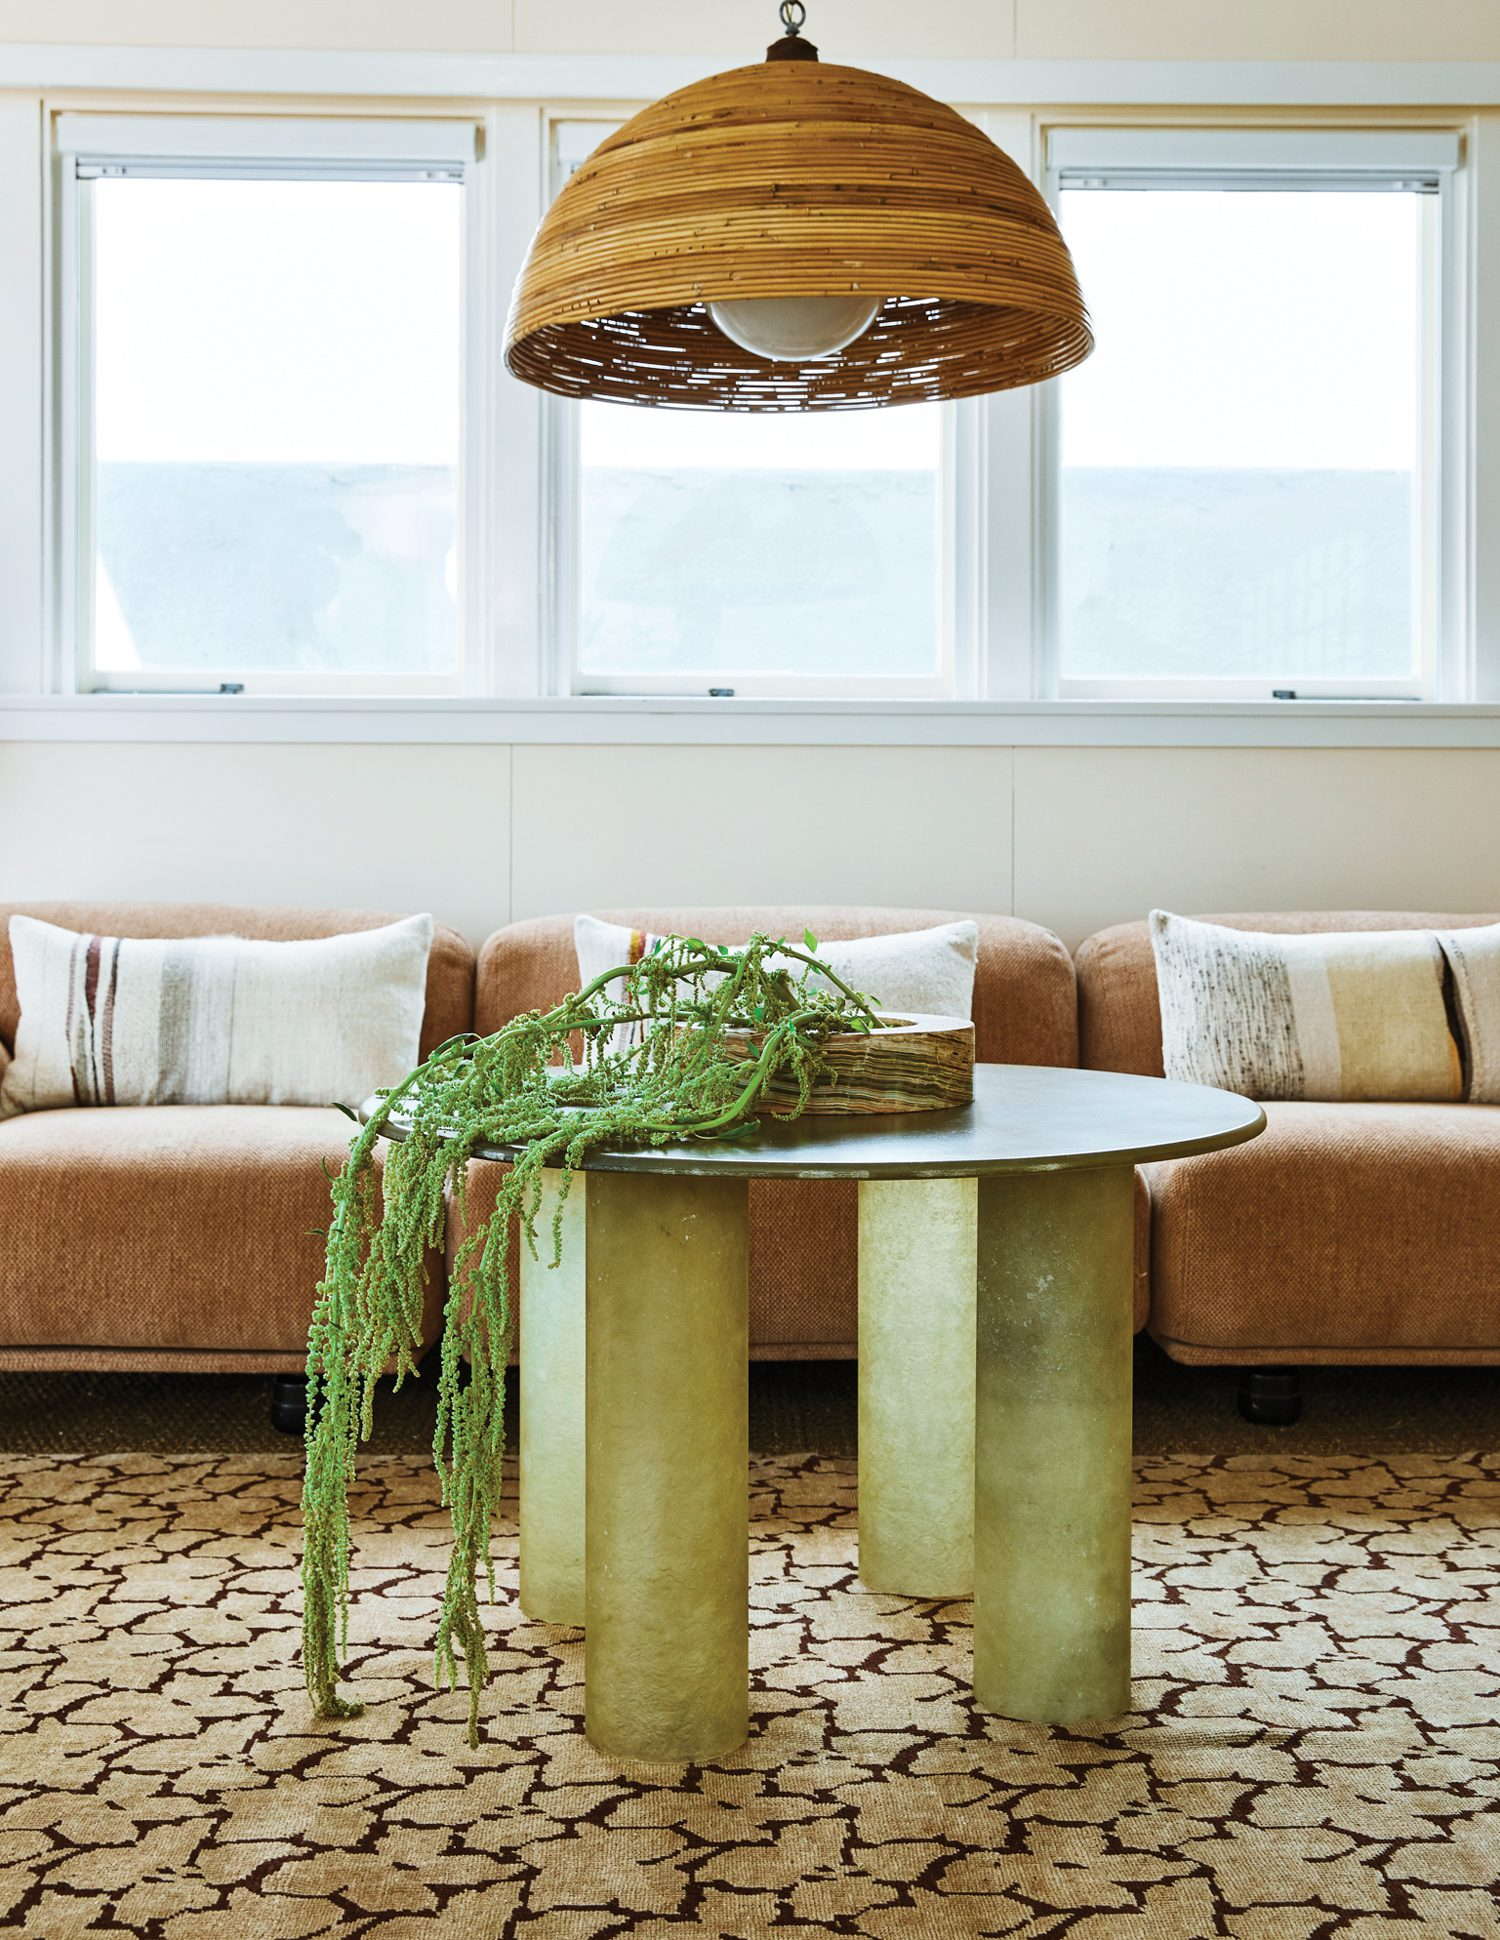 In the den, a fiberglass table by Aschberg Magnuson pairs with a pendant original to the house.